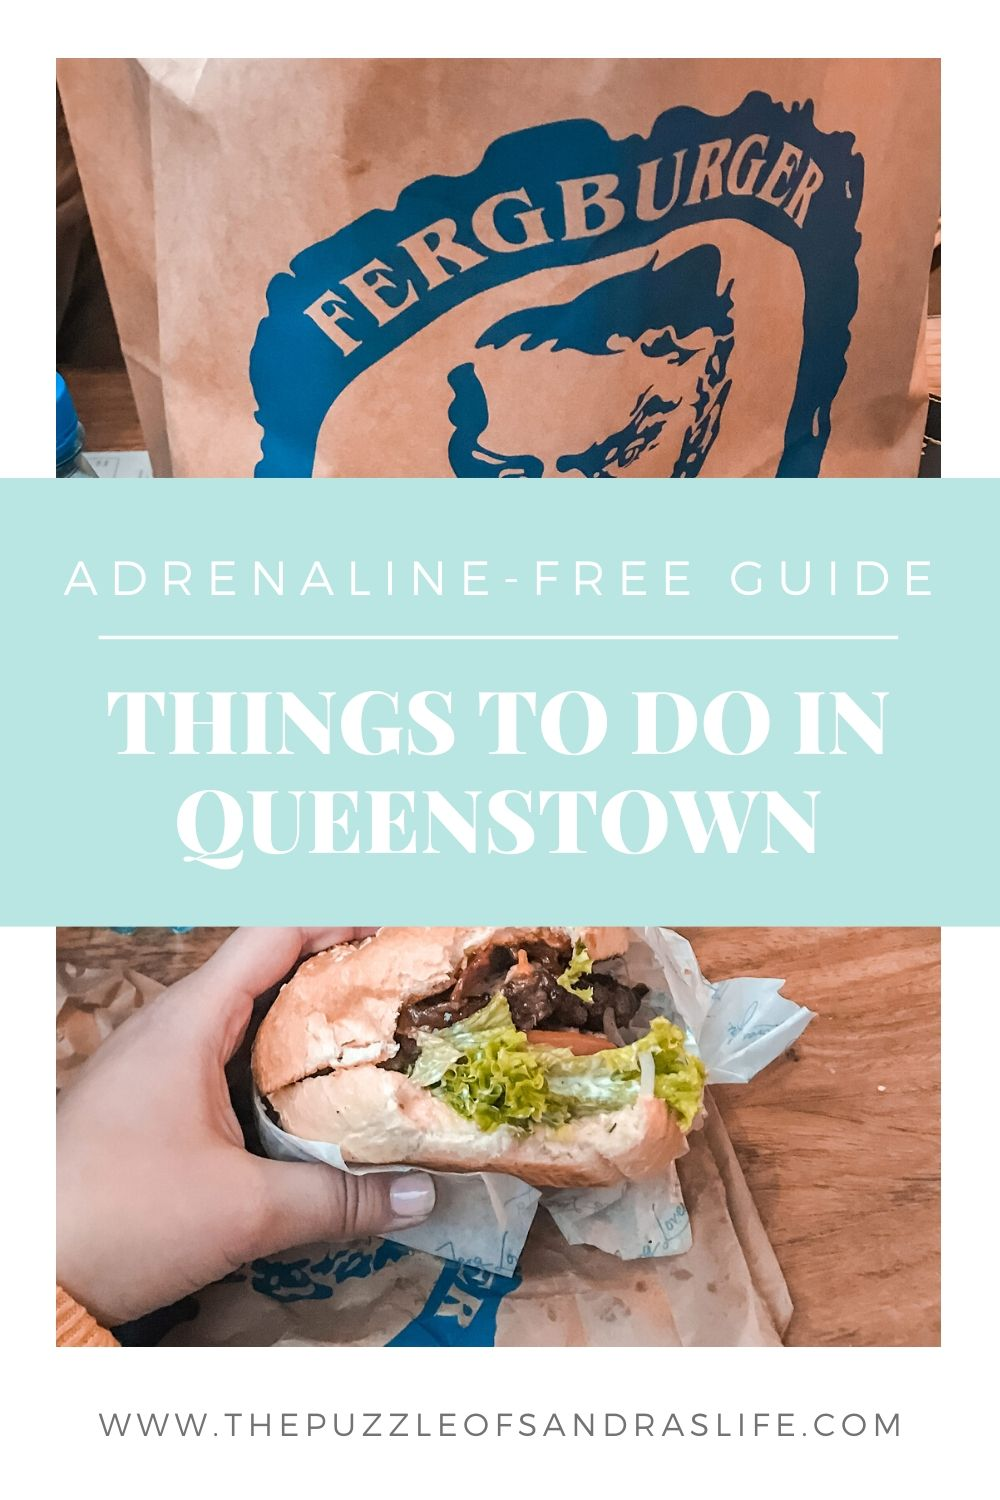 Things to do in Queenstown, New Zealand